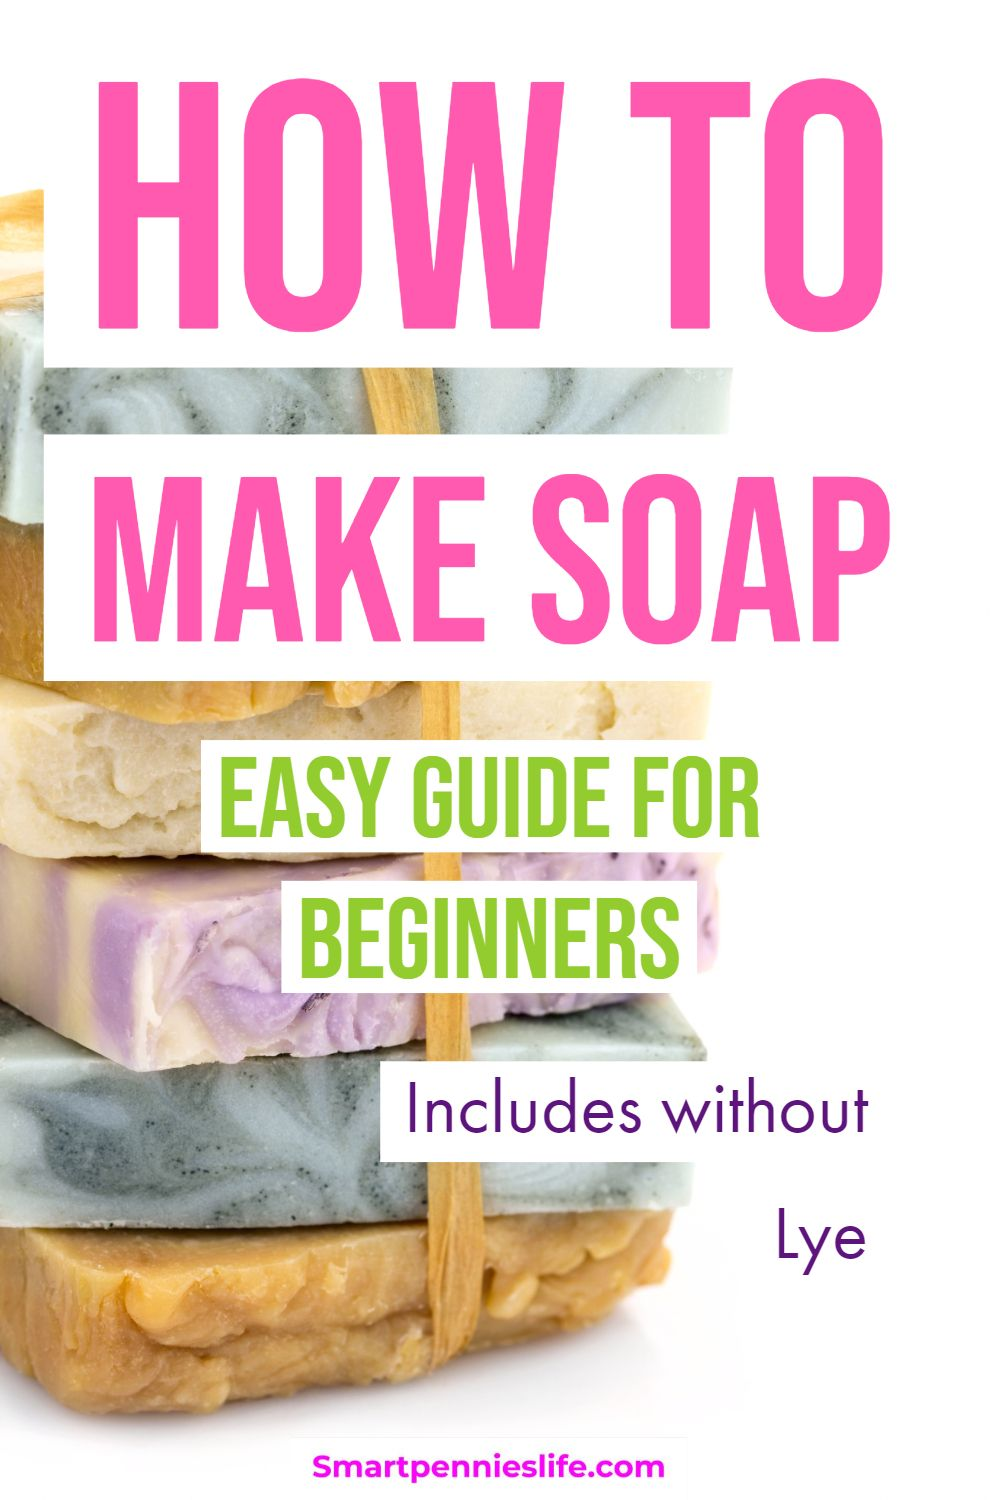 How to make Soap (Includes Without Lye ) Homemade soap